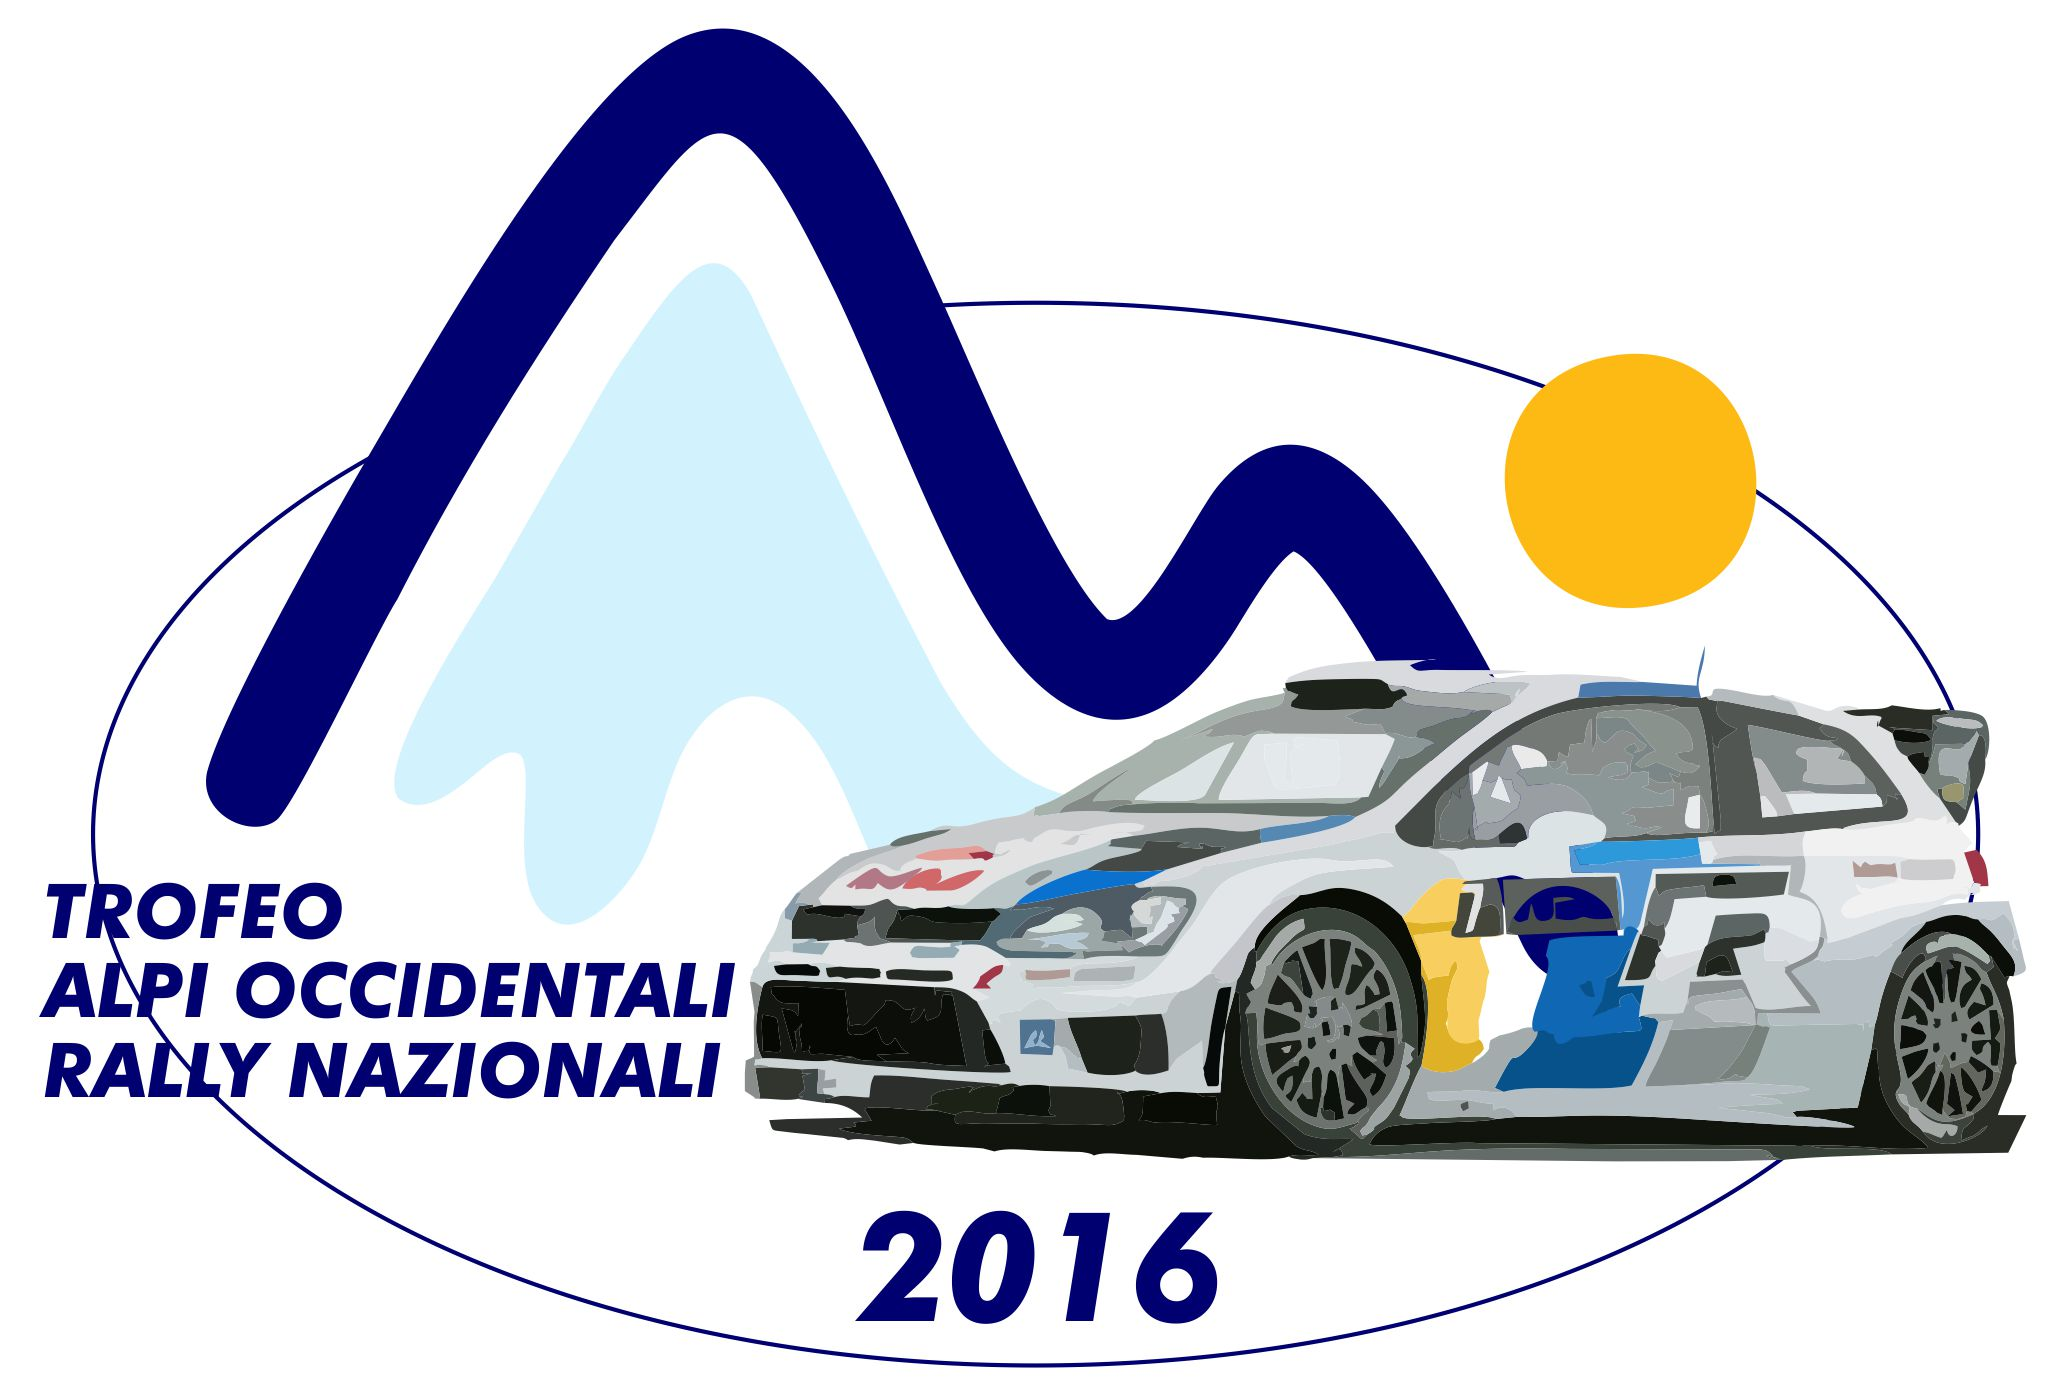 TROFEO ALPI OCCIDENTALI